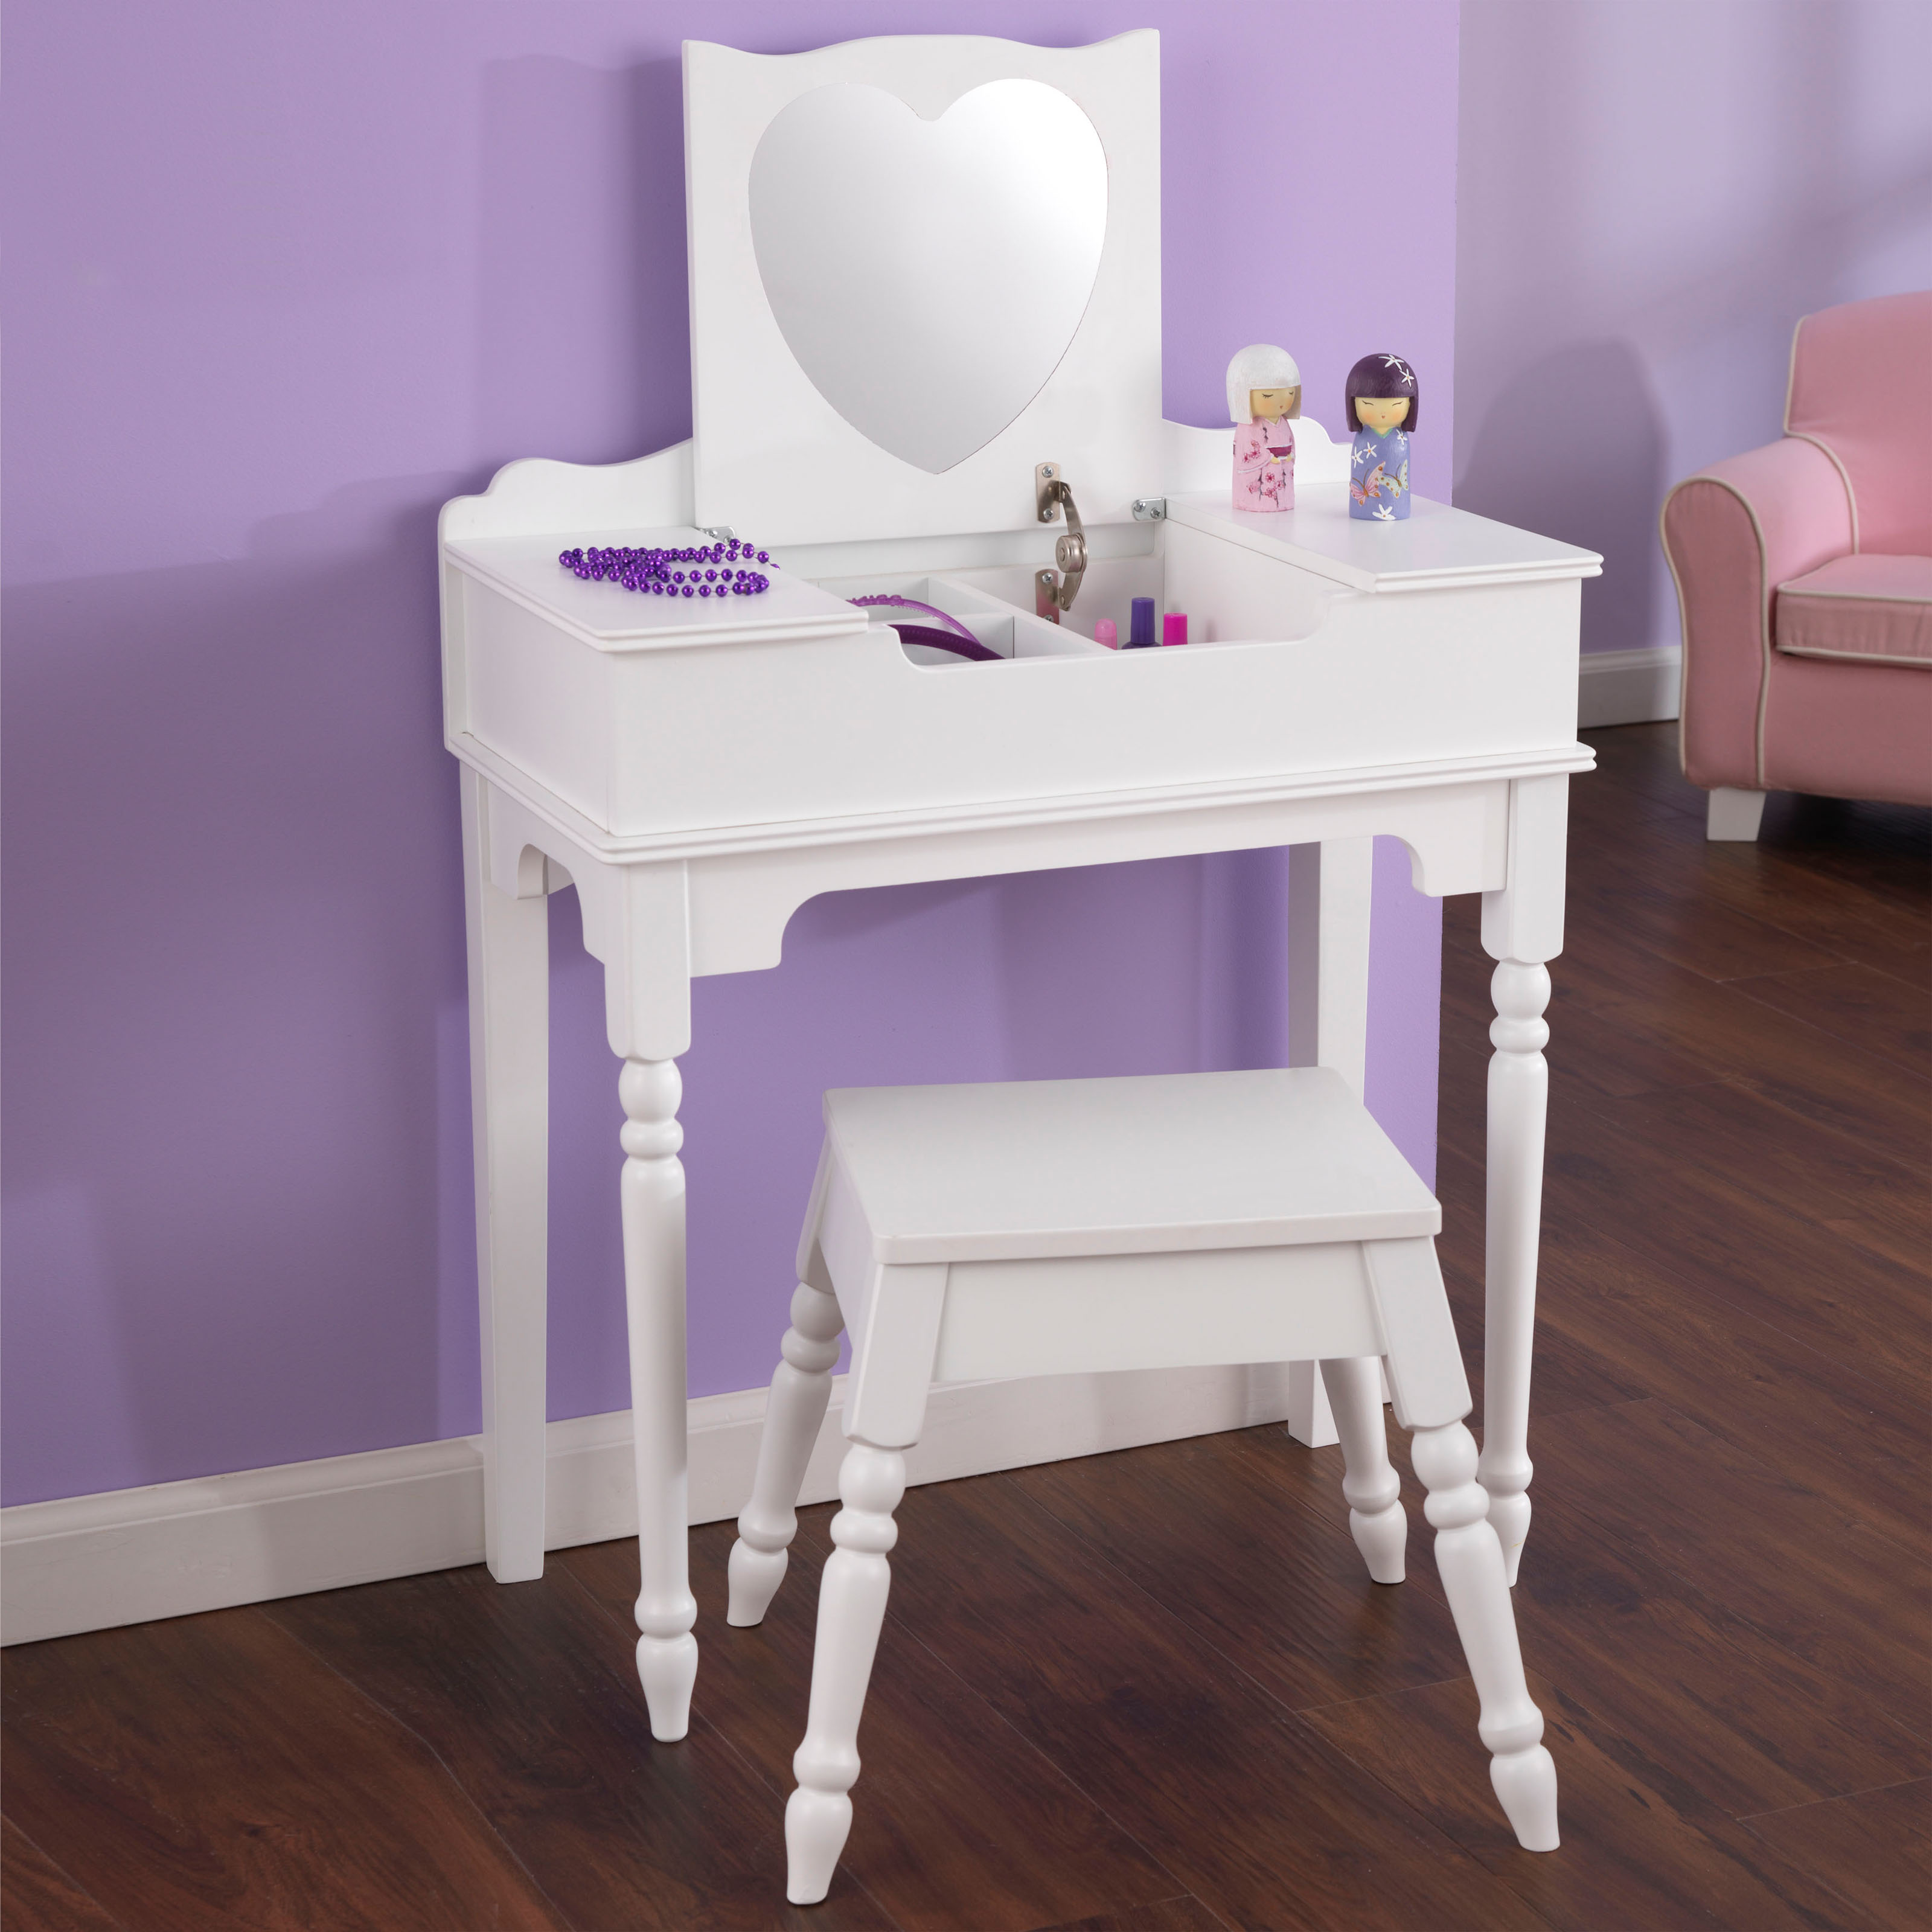 Kidkraft Heart Table And Chair Set Kidkraft Sweetheart Vanity And Stool 13030 Kids